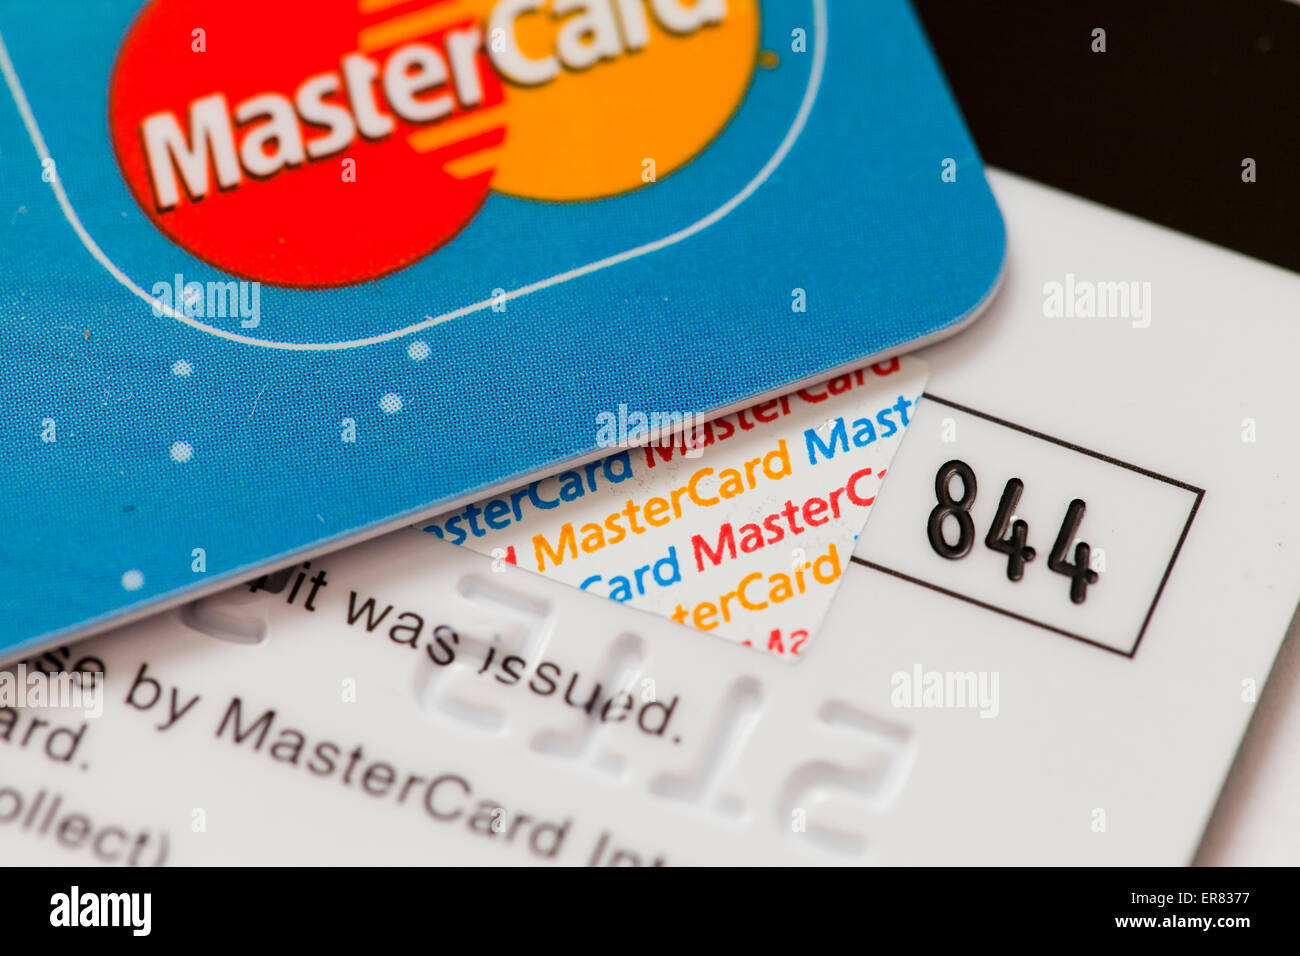 images?q=tbn:ANd9GcQh_l3eQ5xwiPy07kGEXjmjgmBKBRB7H2mRxCGhv1tFWg5c_mWT Best Of Credit Card Security Code Mastercard @autoinsuranceluck.xyz